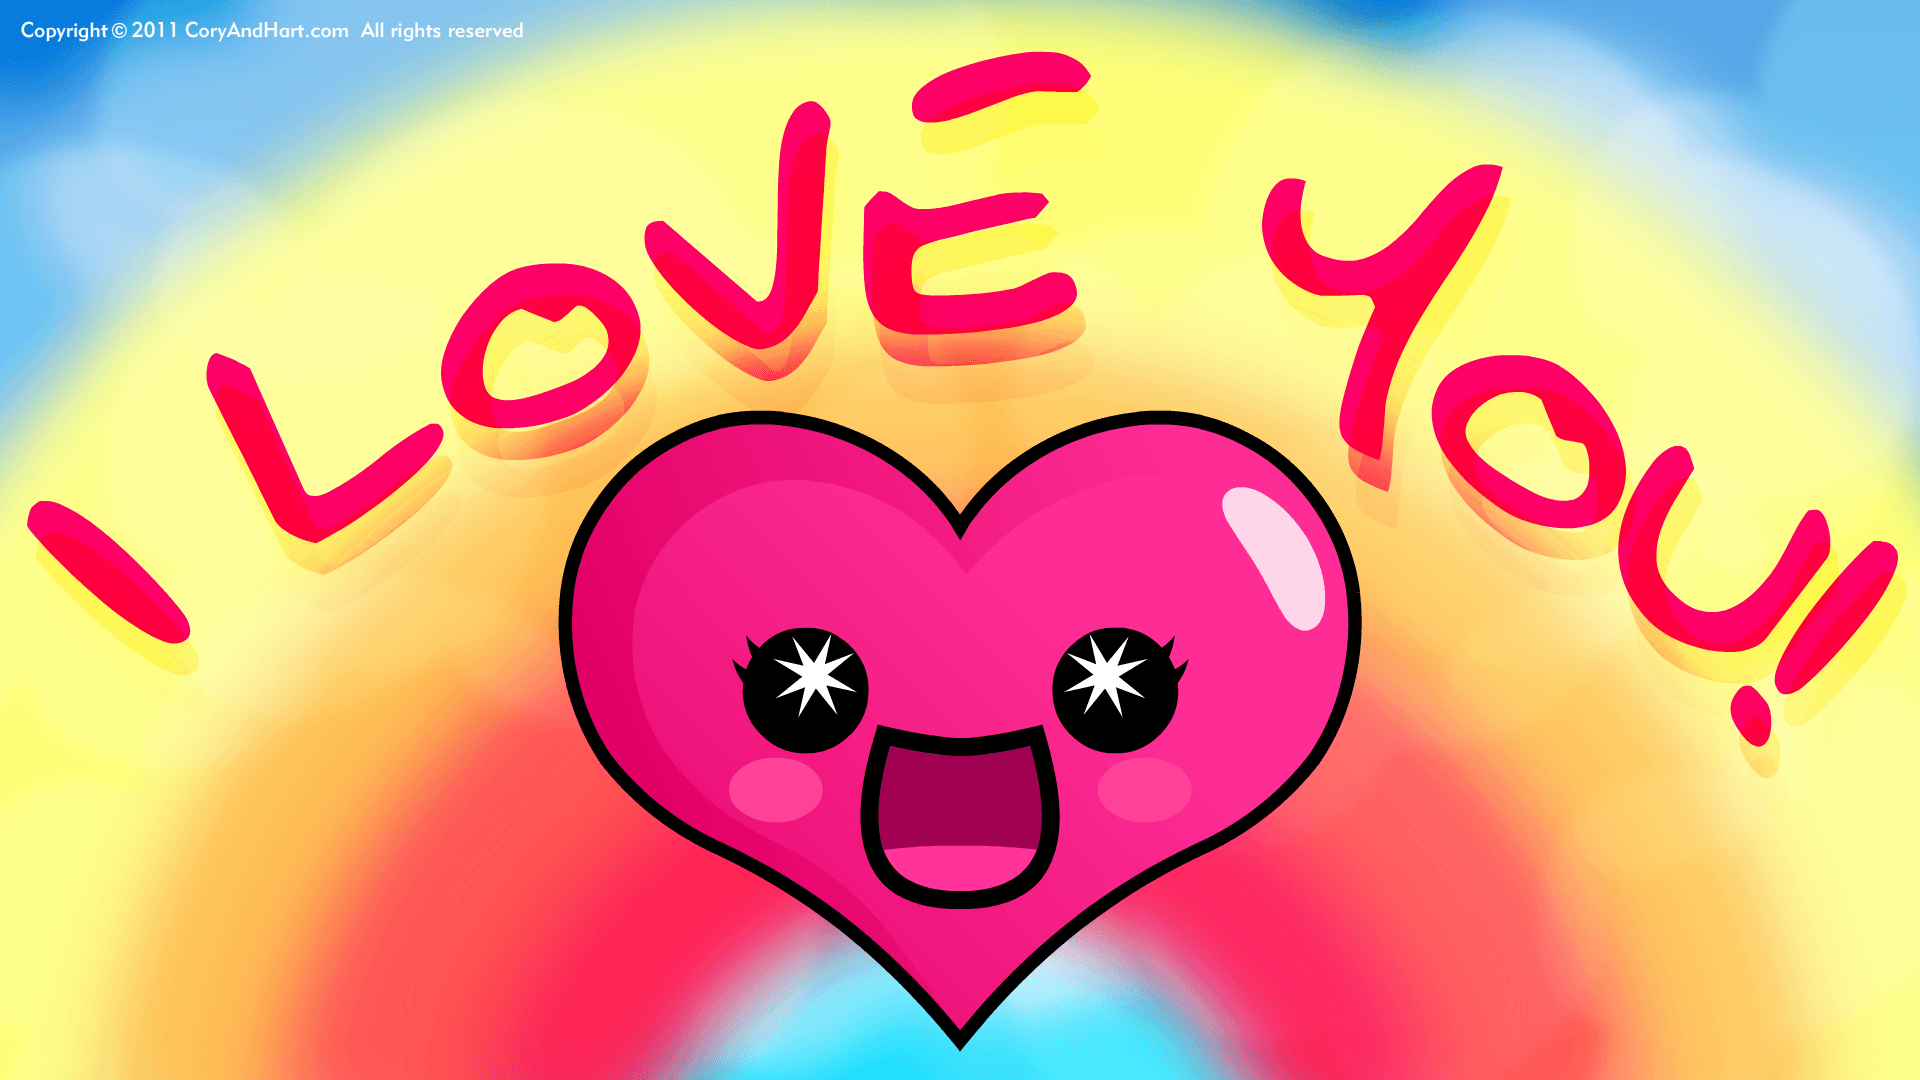 Love Very cute Wallpaper : cute I Love You Wallpapers - Wallpaper cave